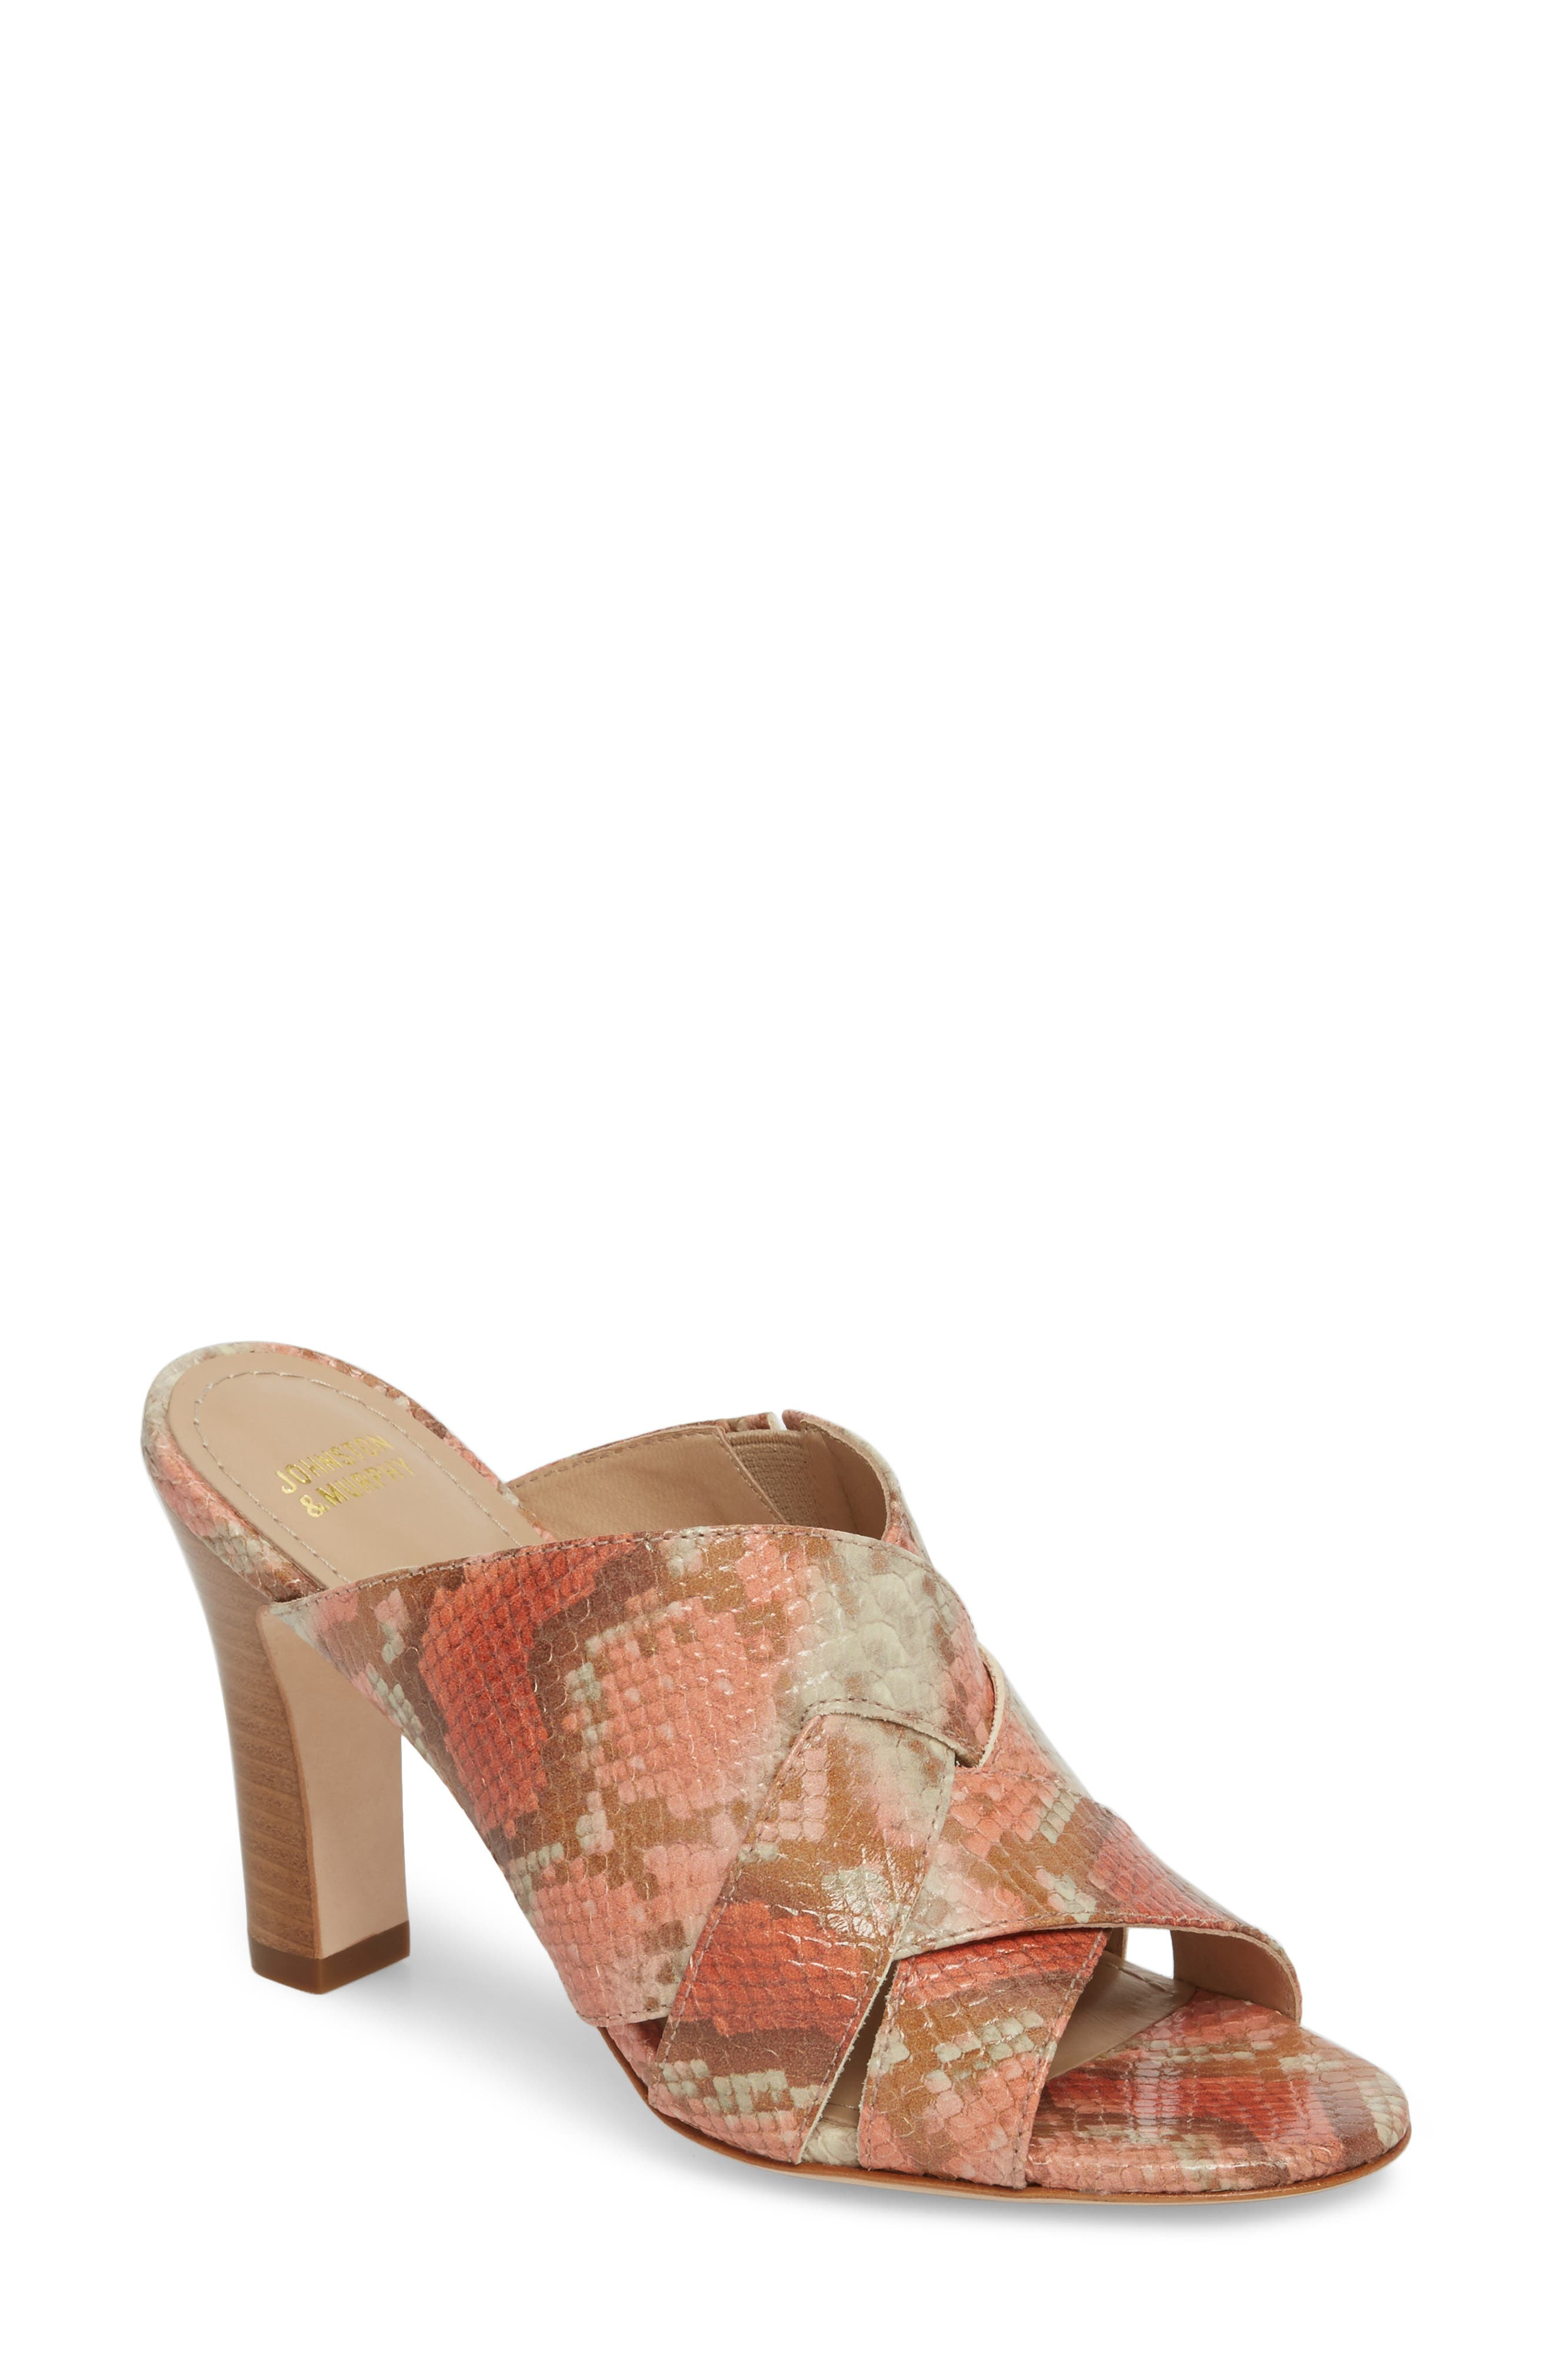 Carrie Mule Sandal,                             Main thumbnail 1, color,                             Coral Leather